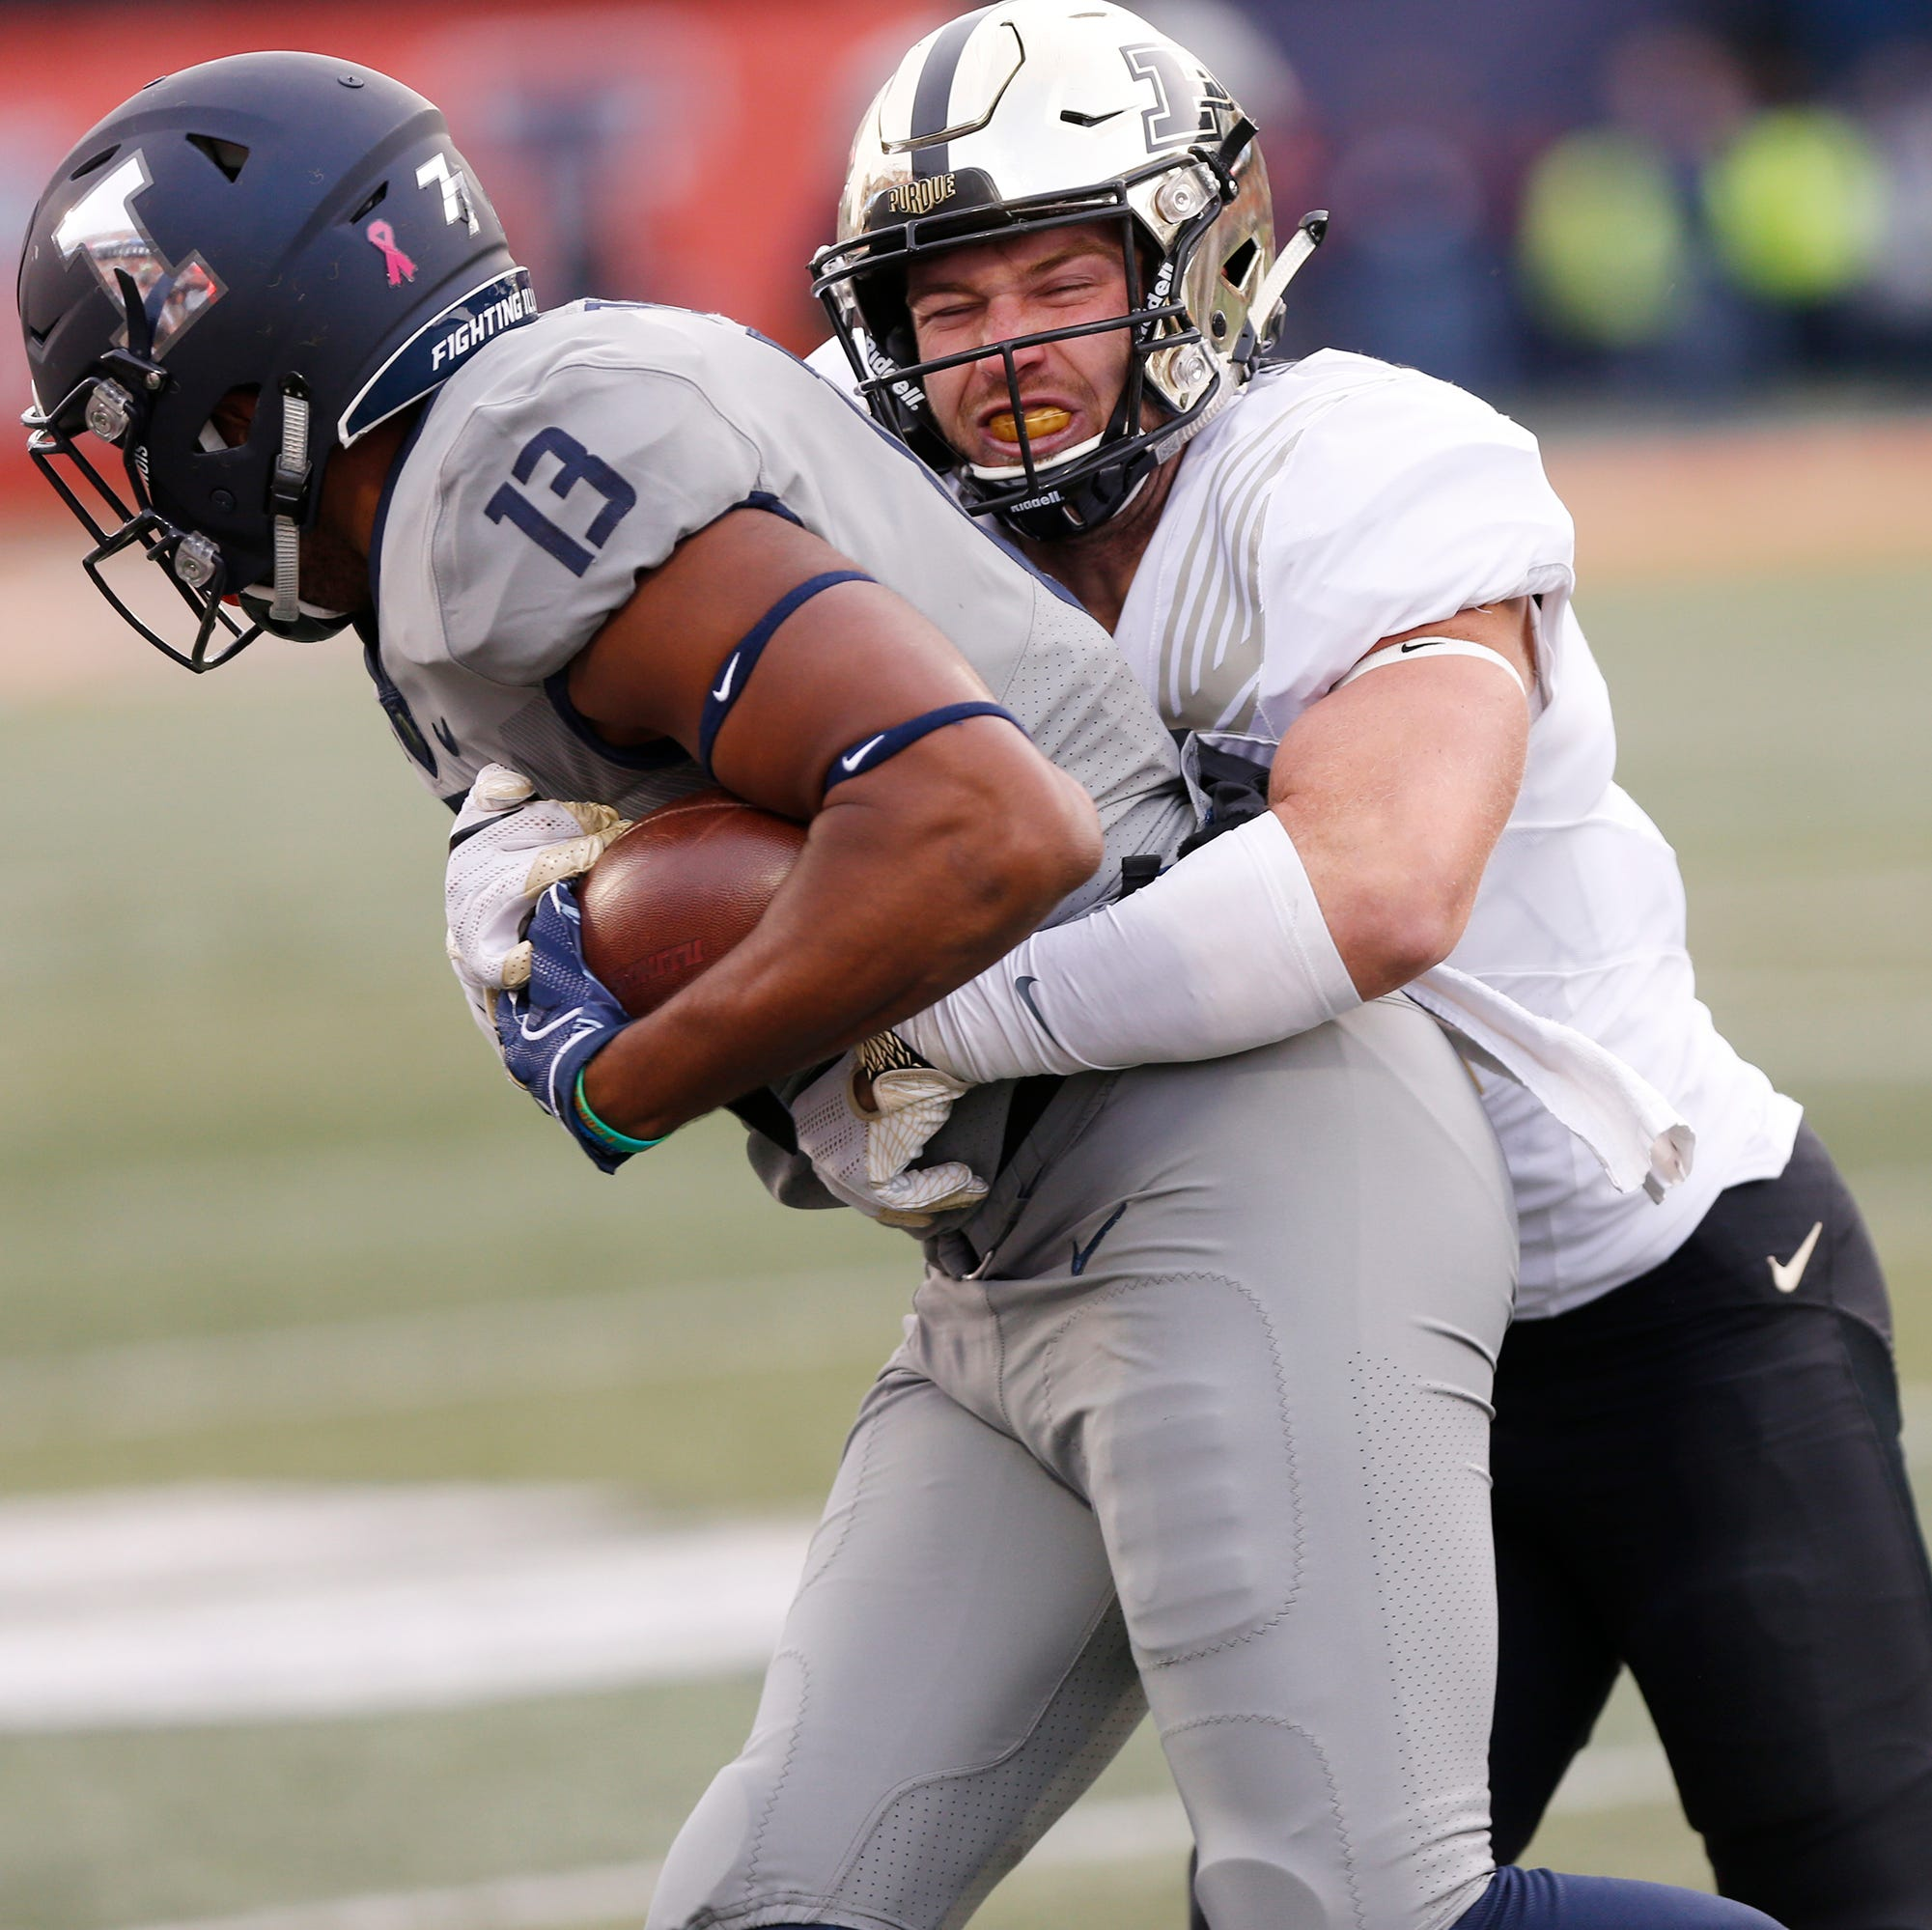 Purdue safety Jacob Thieneman 'feeling good' about playing in Music City Bowl